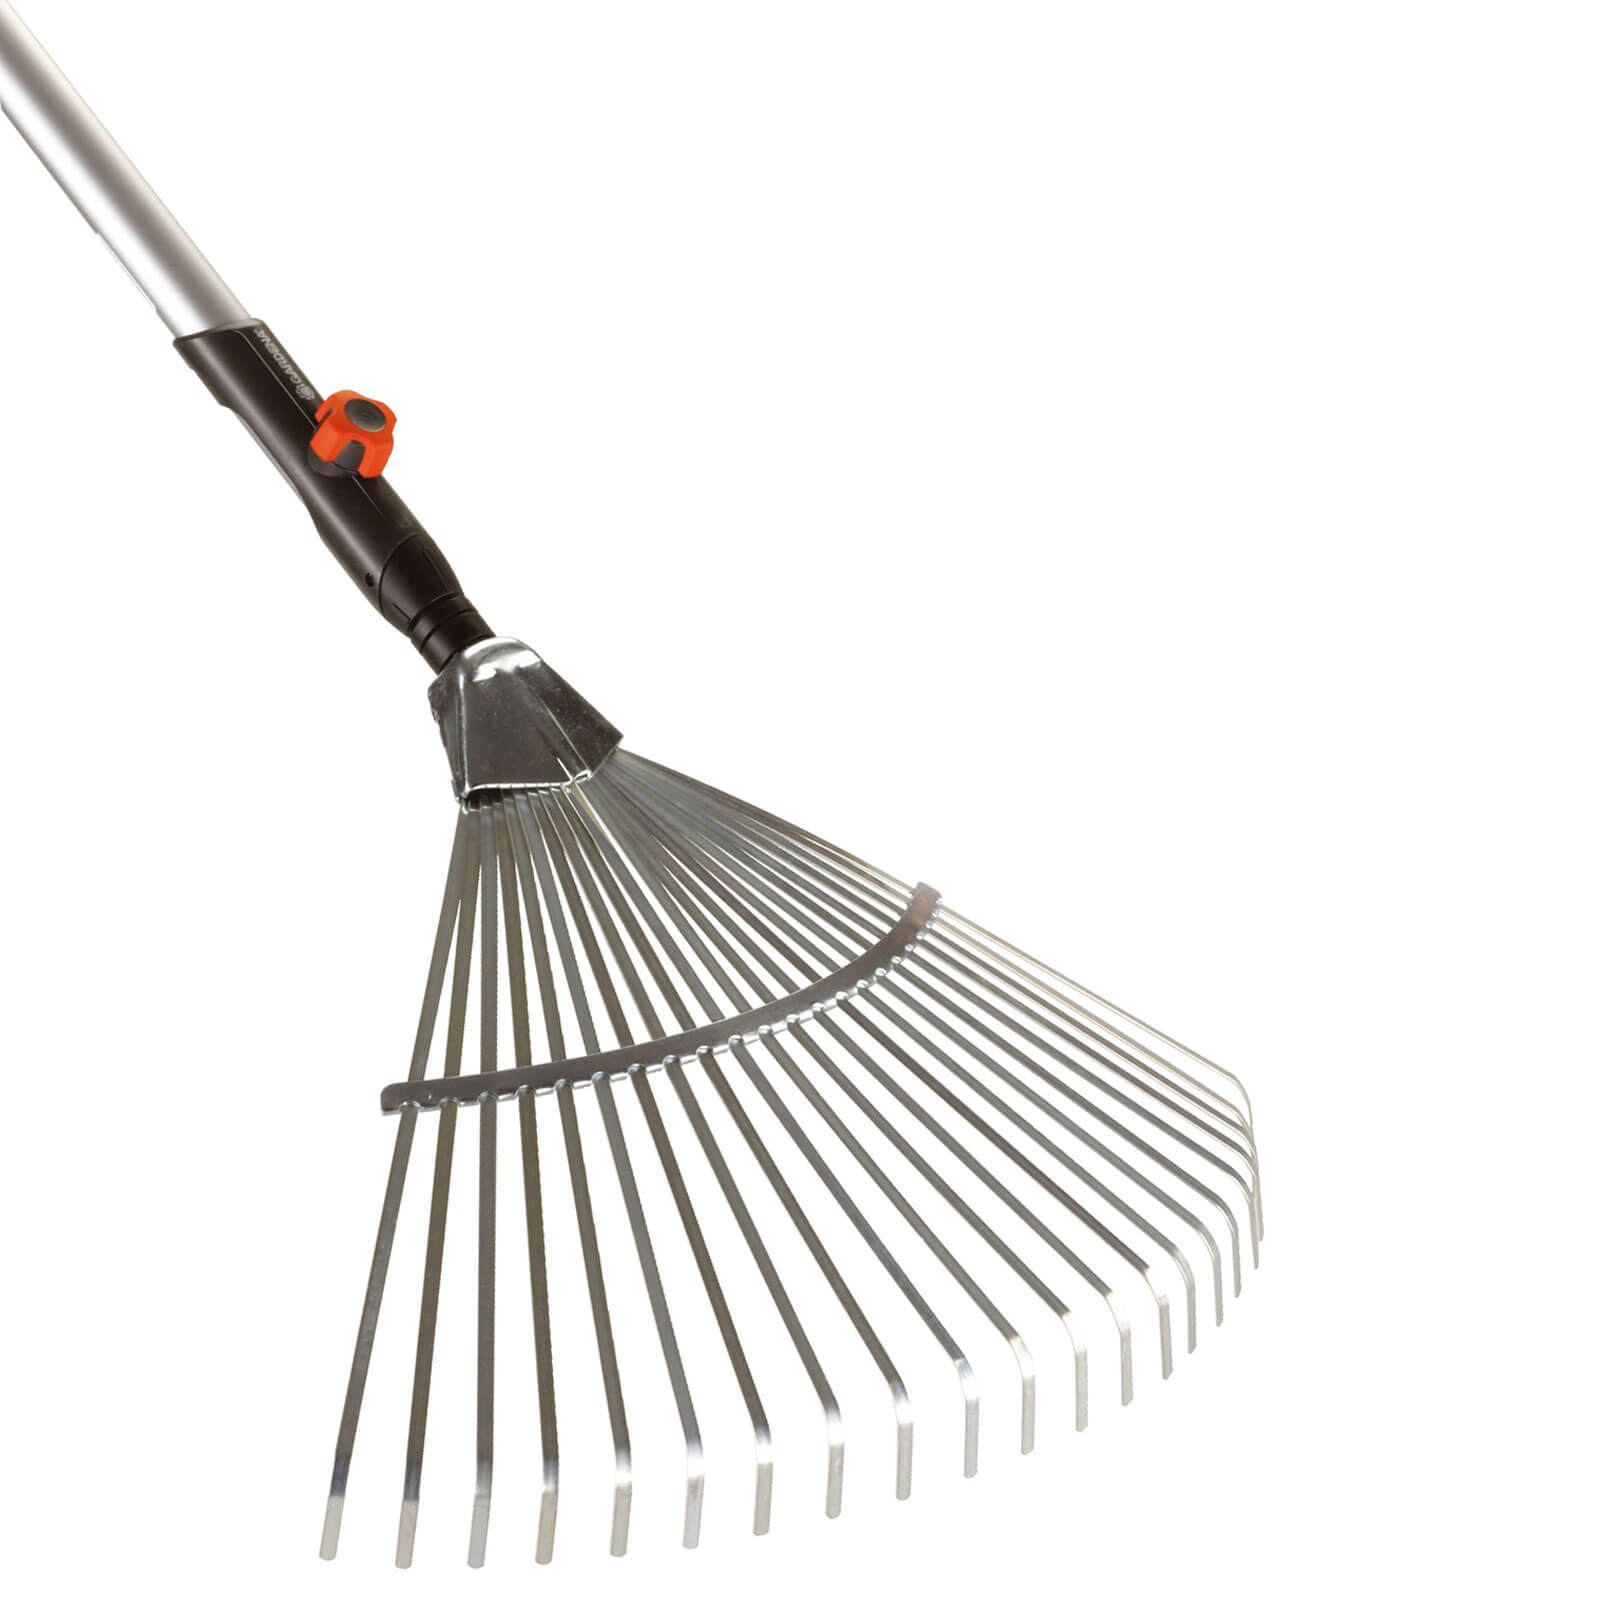 Garden hand tools gardena combisystem fan rake with for Large rake garden tool